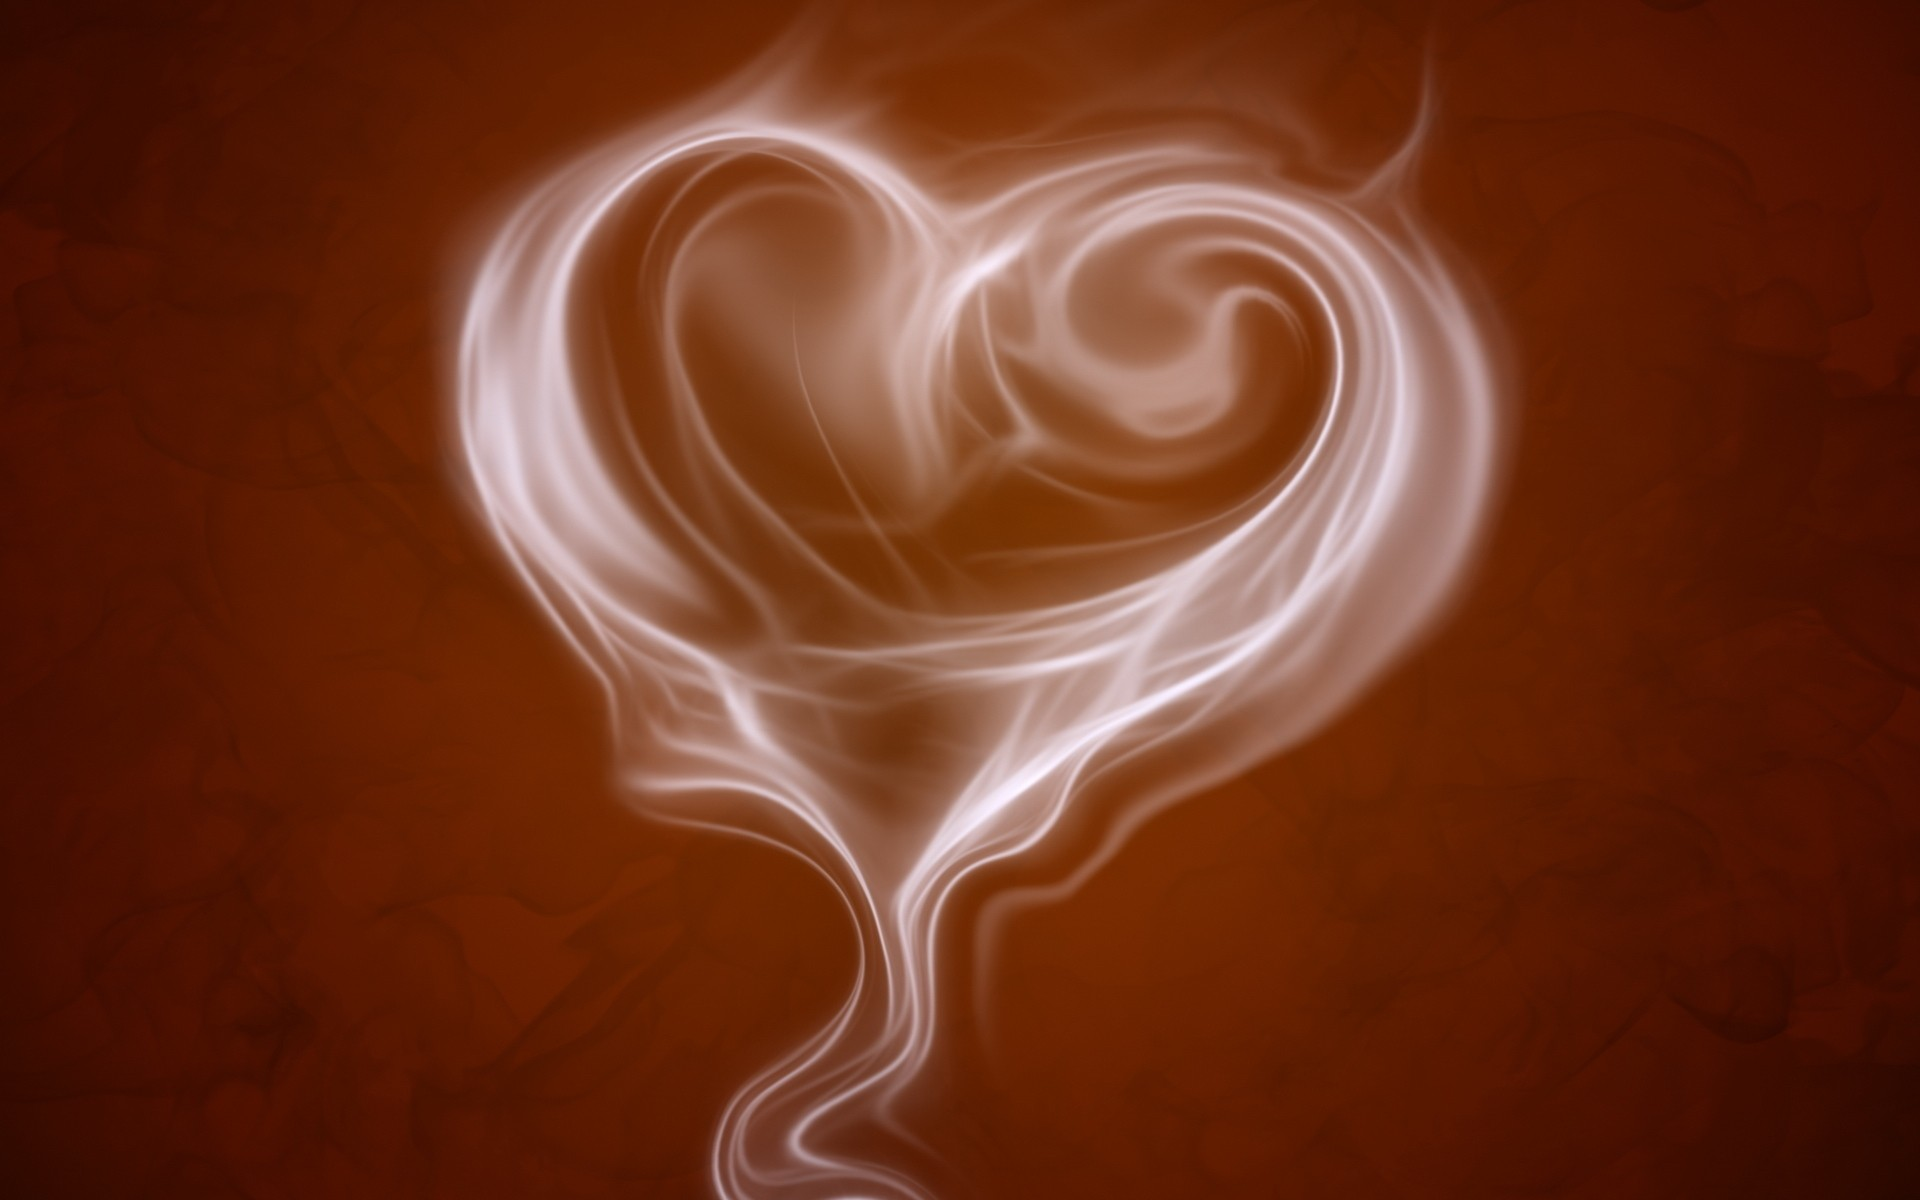 Love Smoke Wallpaper Wallpapersafari